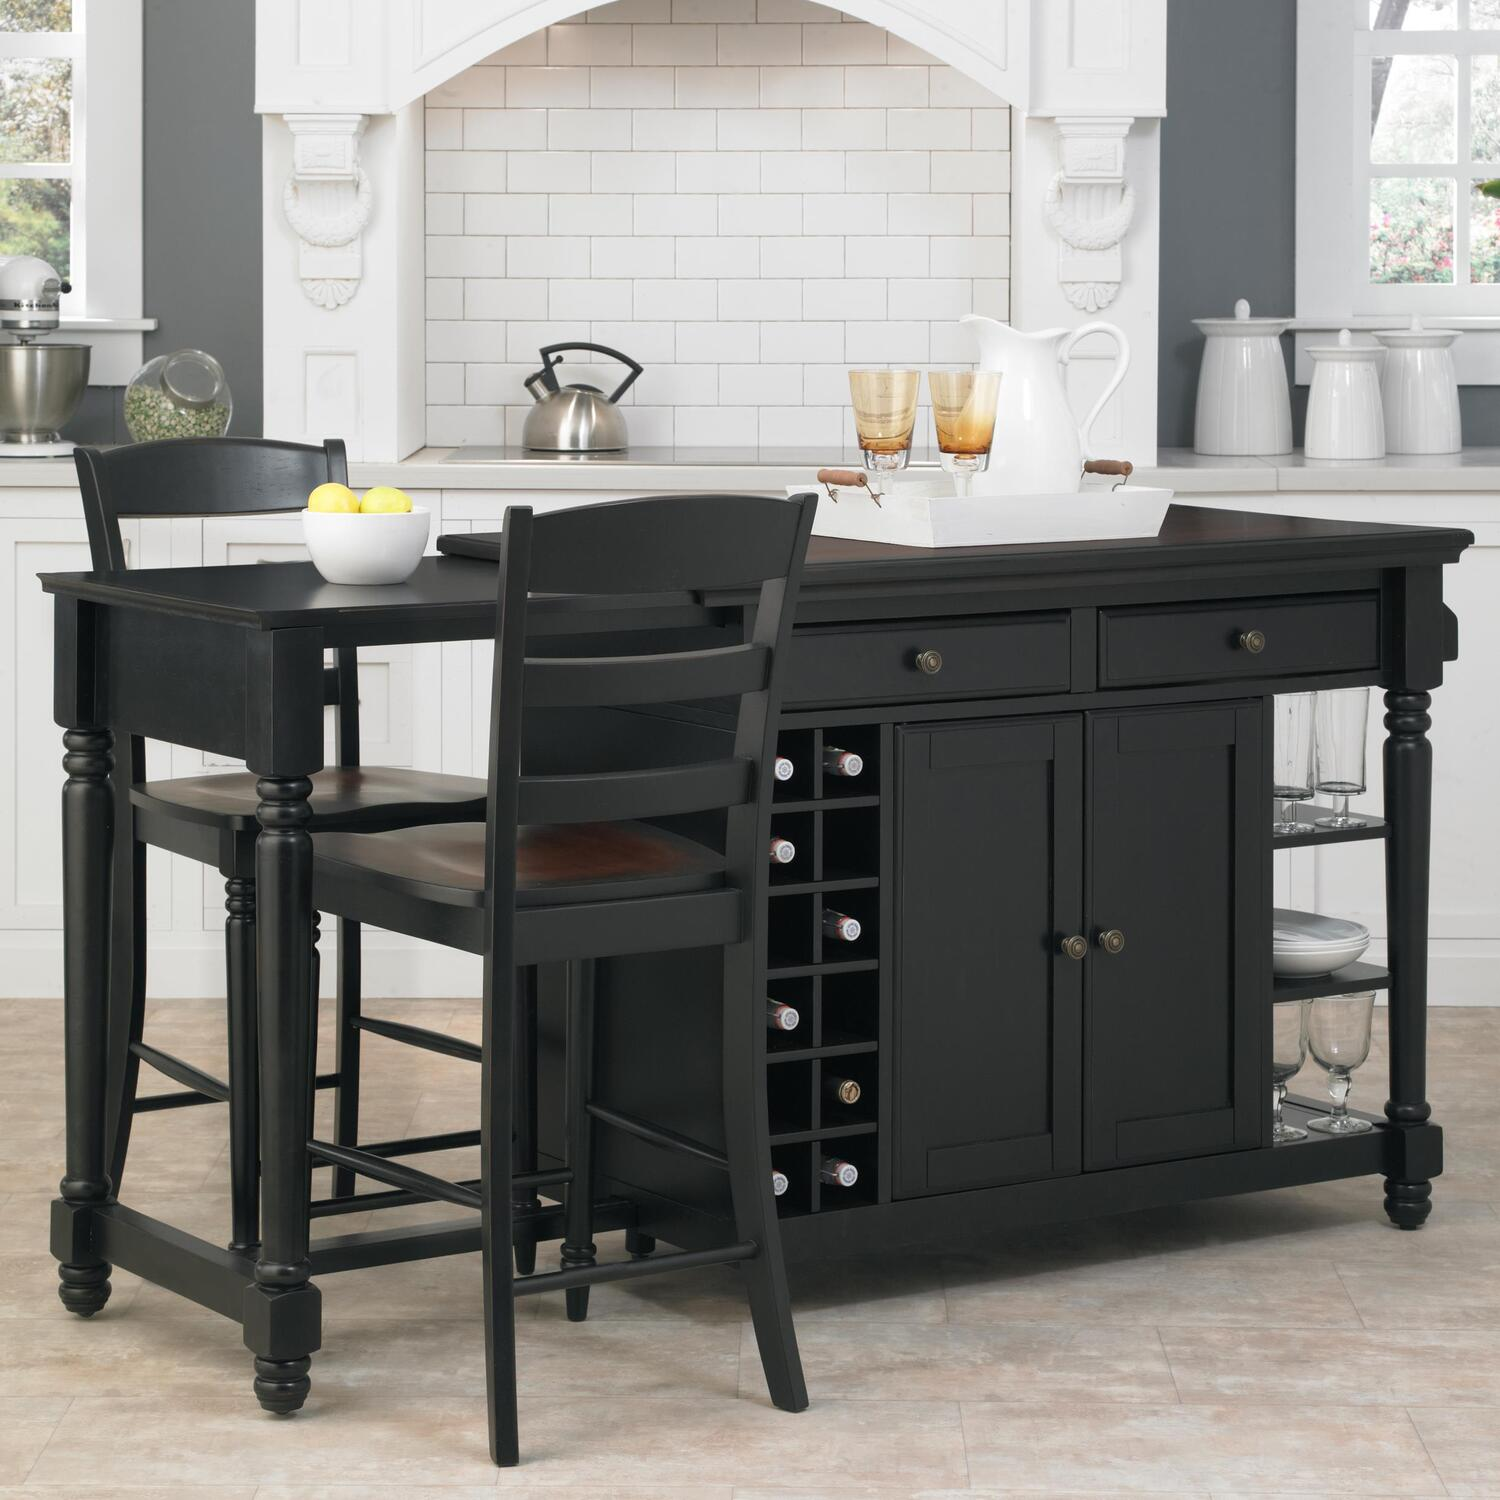 Home Styles Grand Torino Kitchen Island Two Stools By Oj Commerce 5012 948